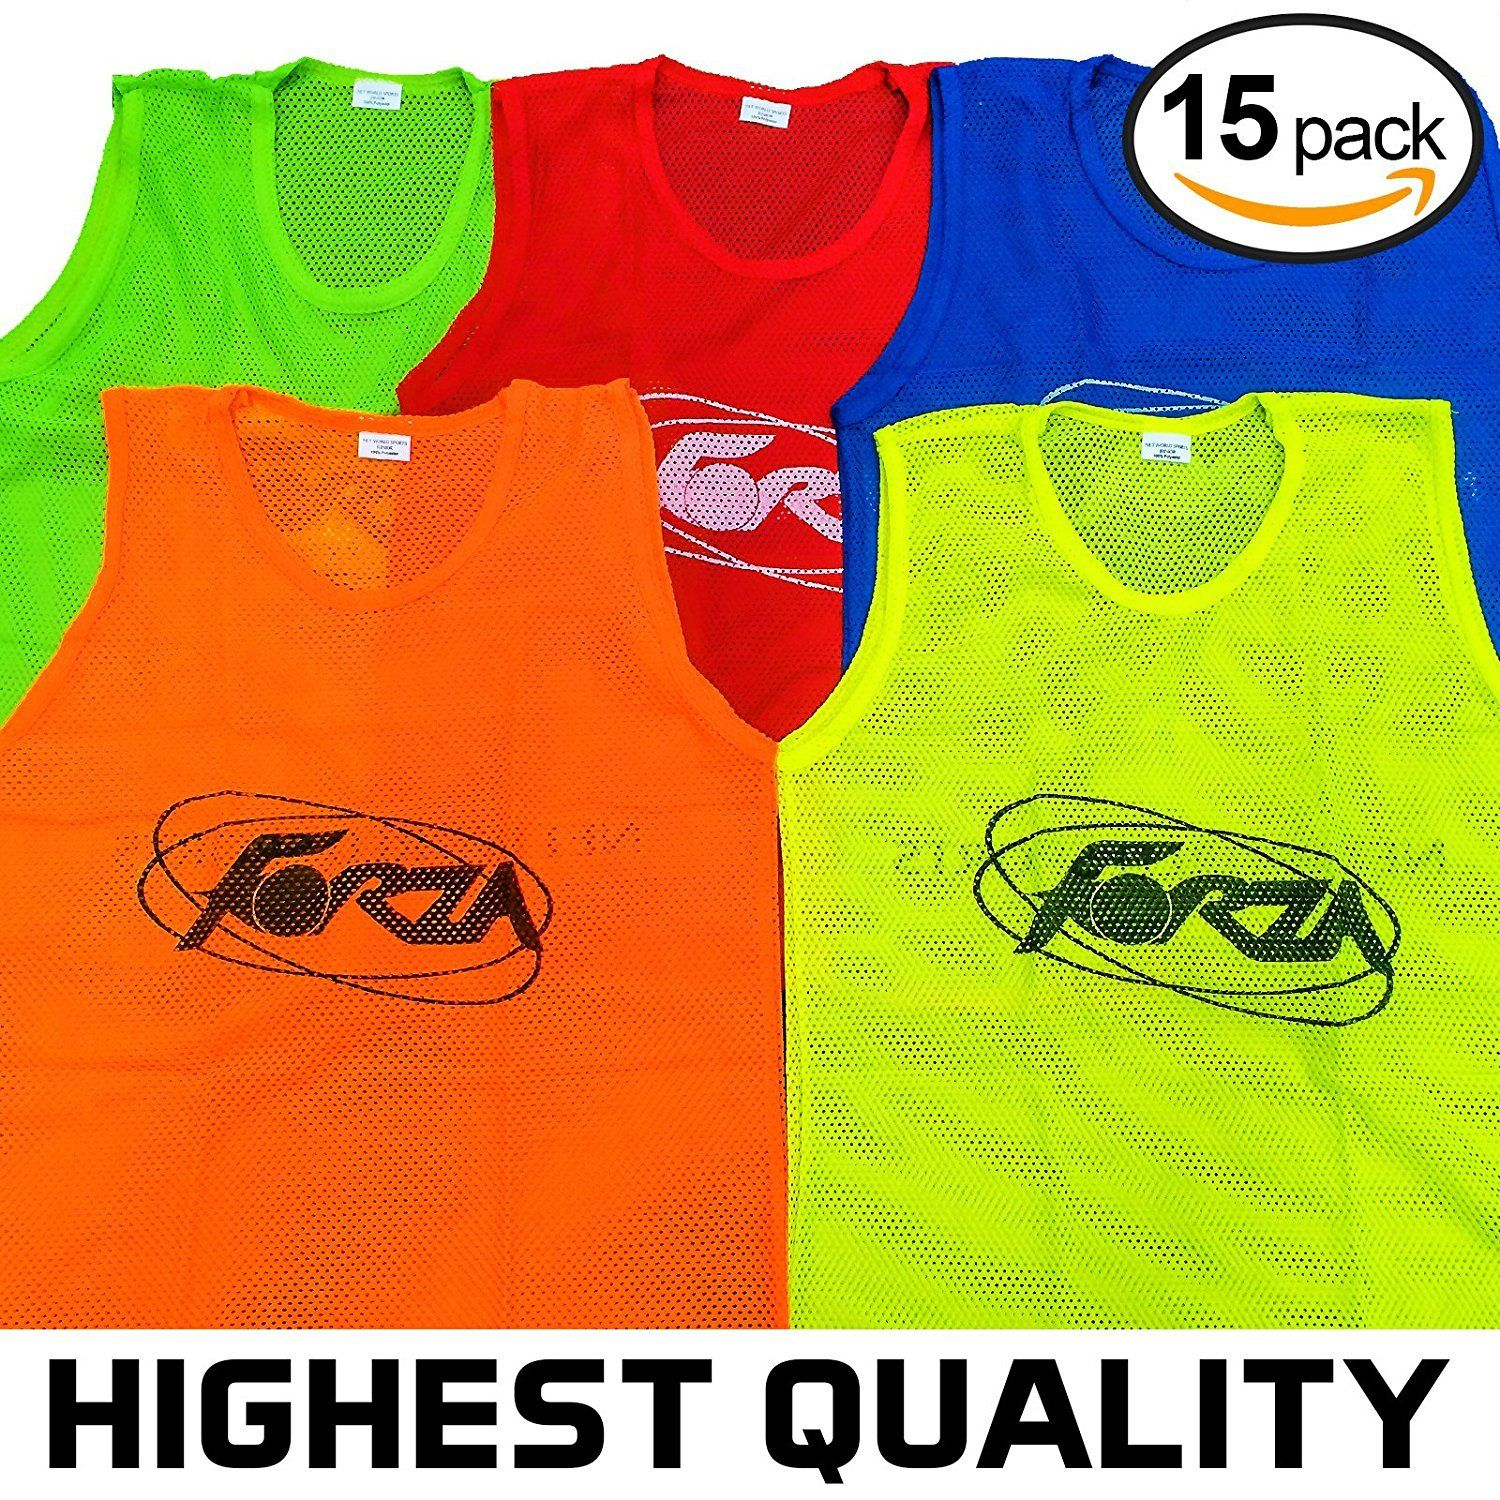 15x Forza Training Pinnies Vests Bibs Highest Quality Available Xl Yellow Best Quality Soccer Traini Athletic Tank Tops Soccer Coaching Football Training